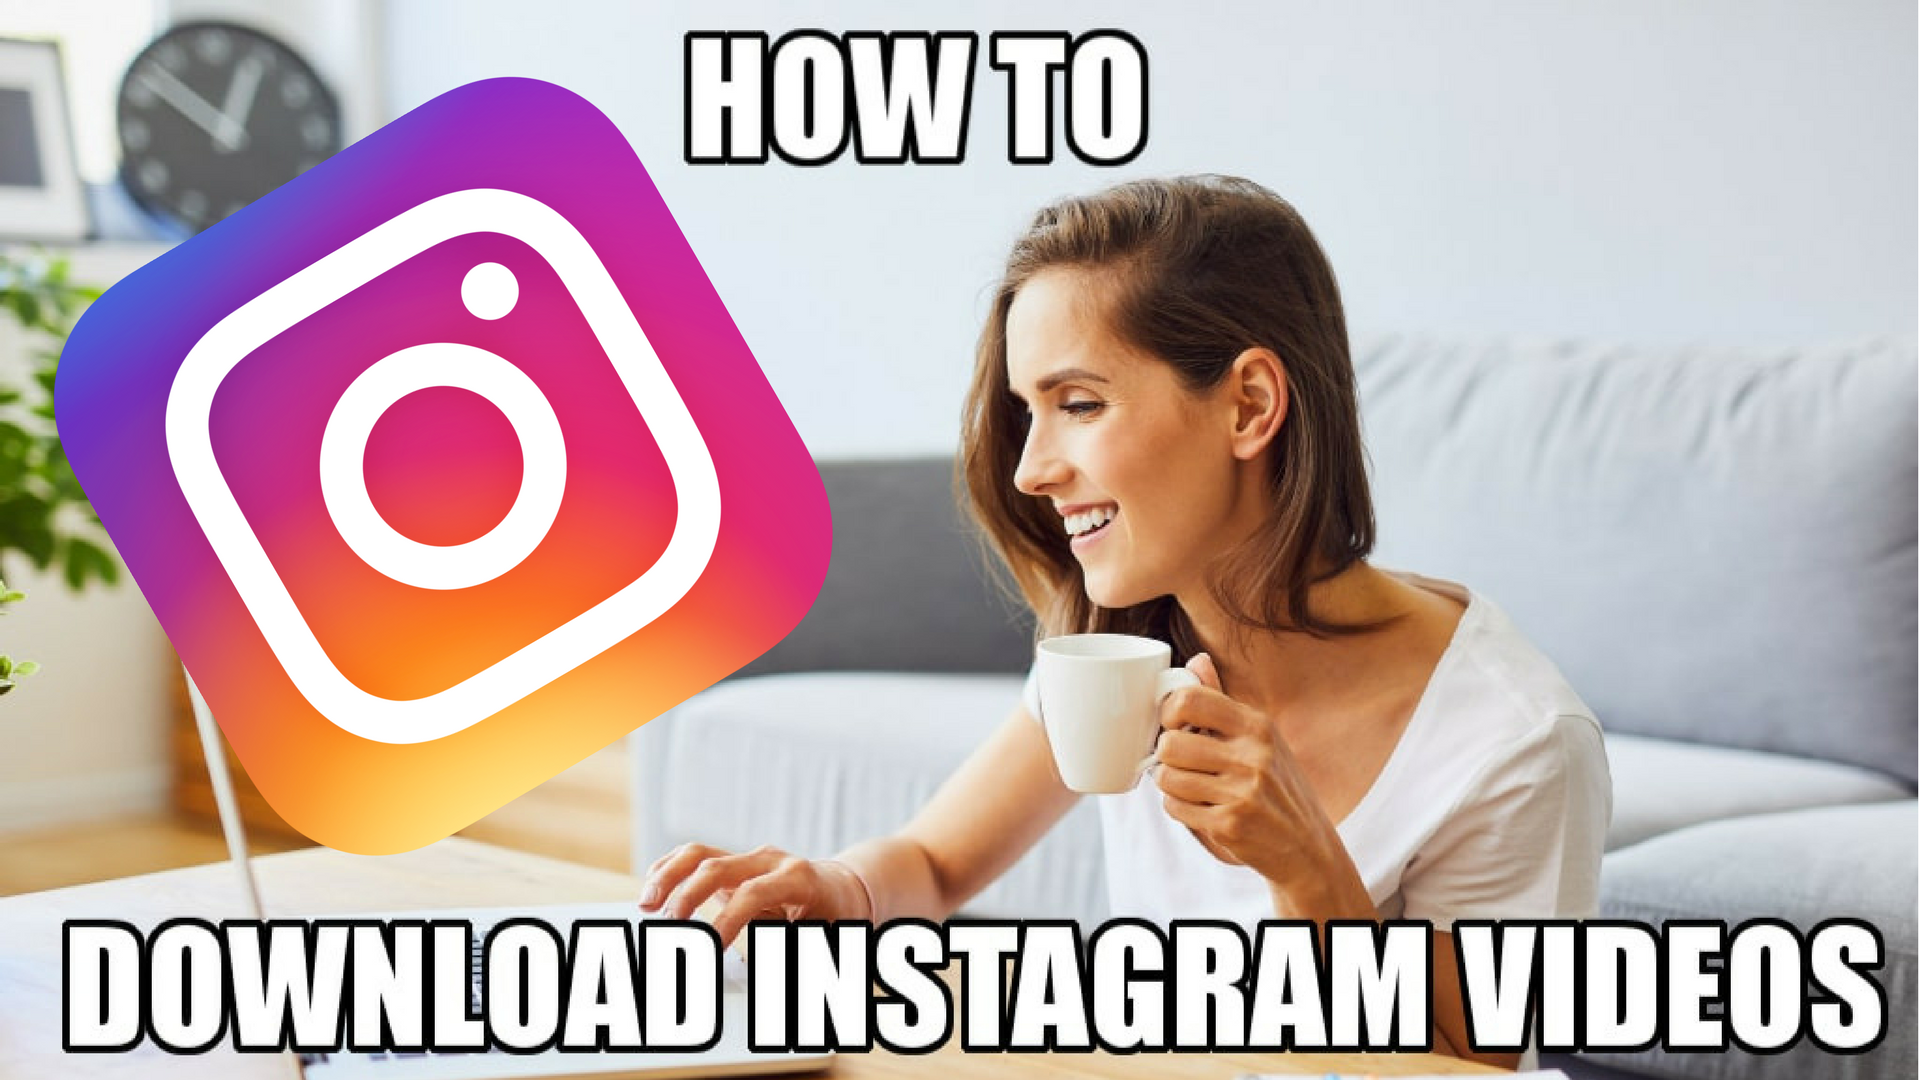 How to download Instagram Videos and Photos in seconds? (Video)